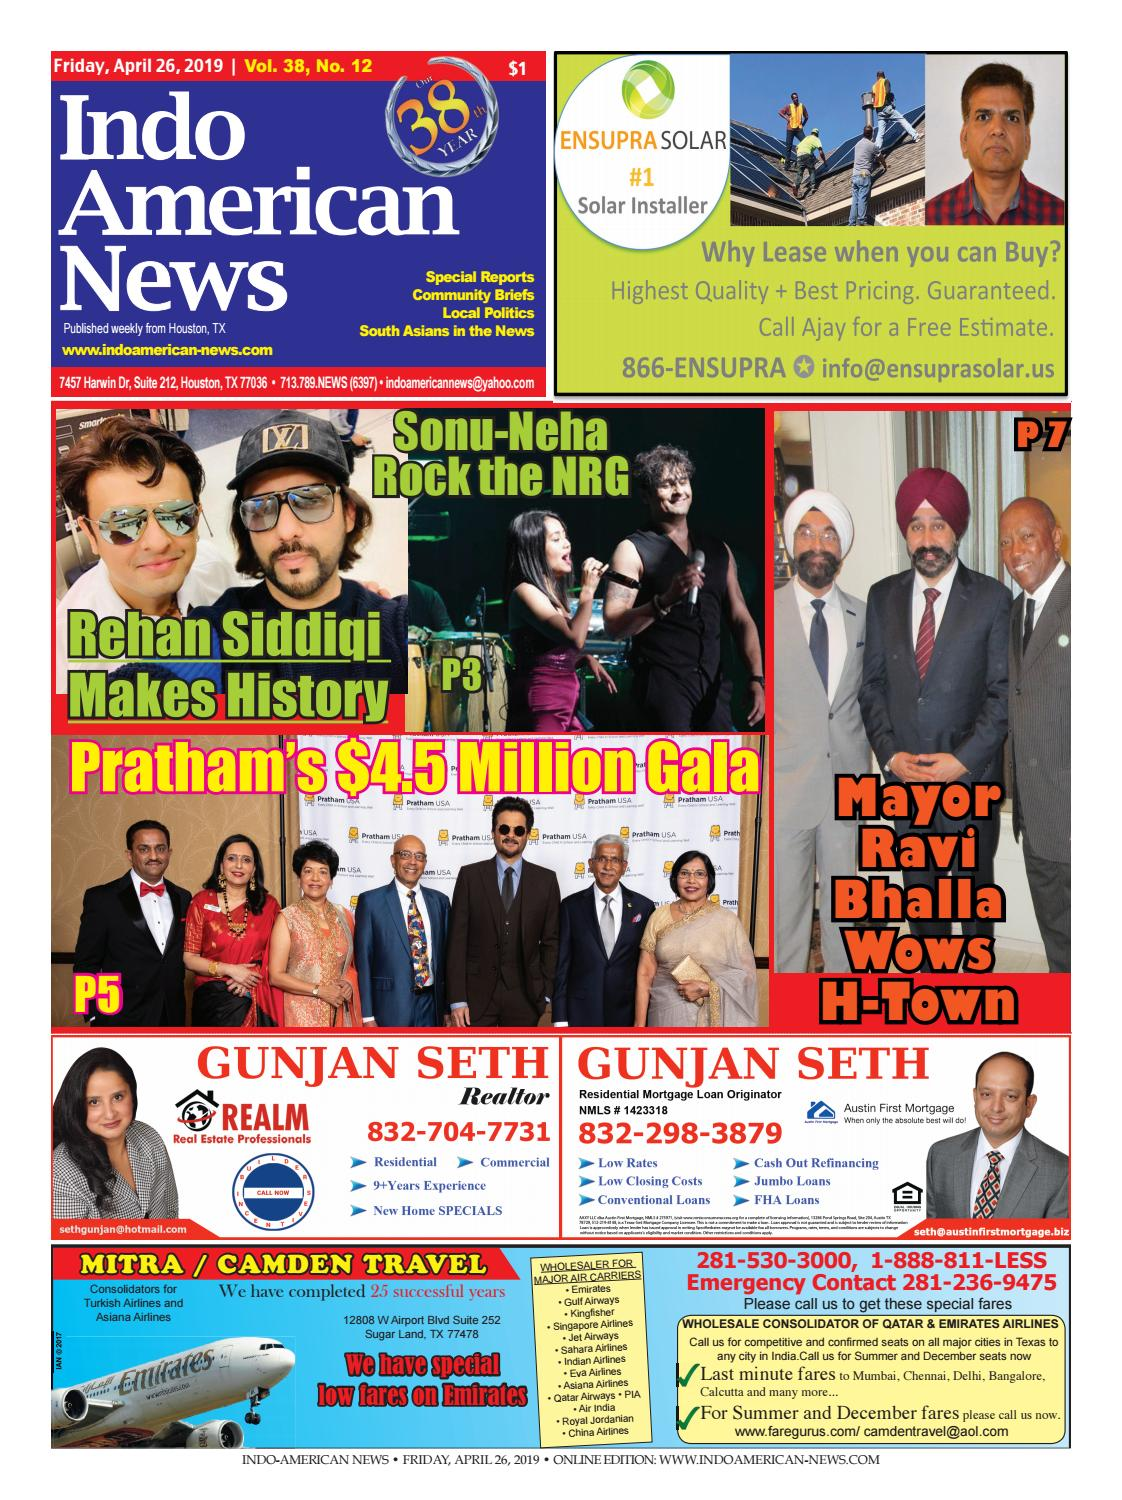 Indo-American News April 26, 2019 by Indo American News - issuu